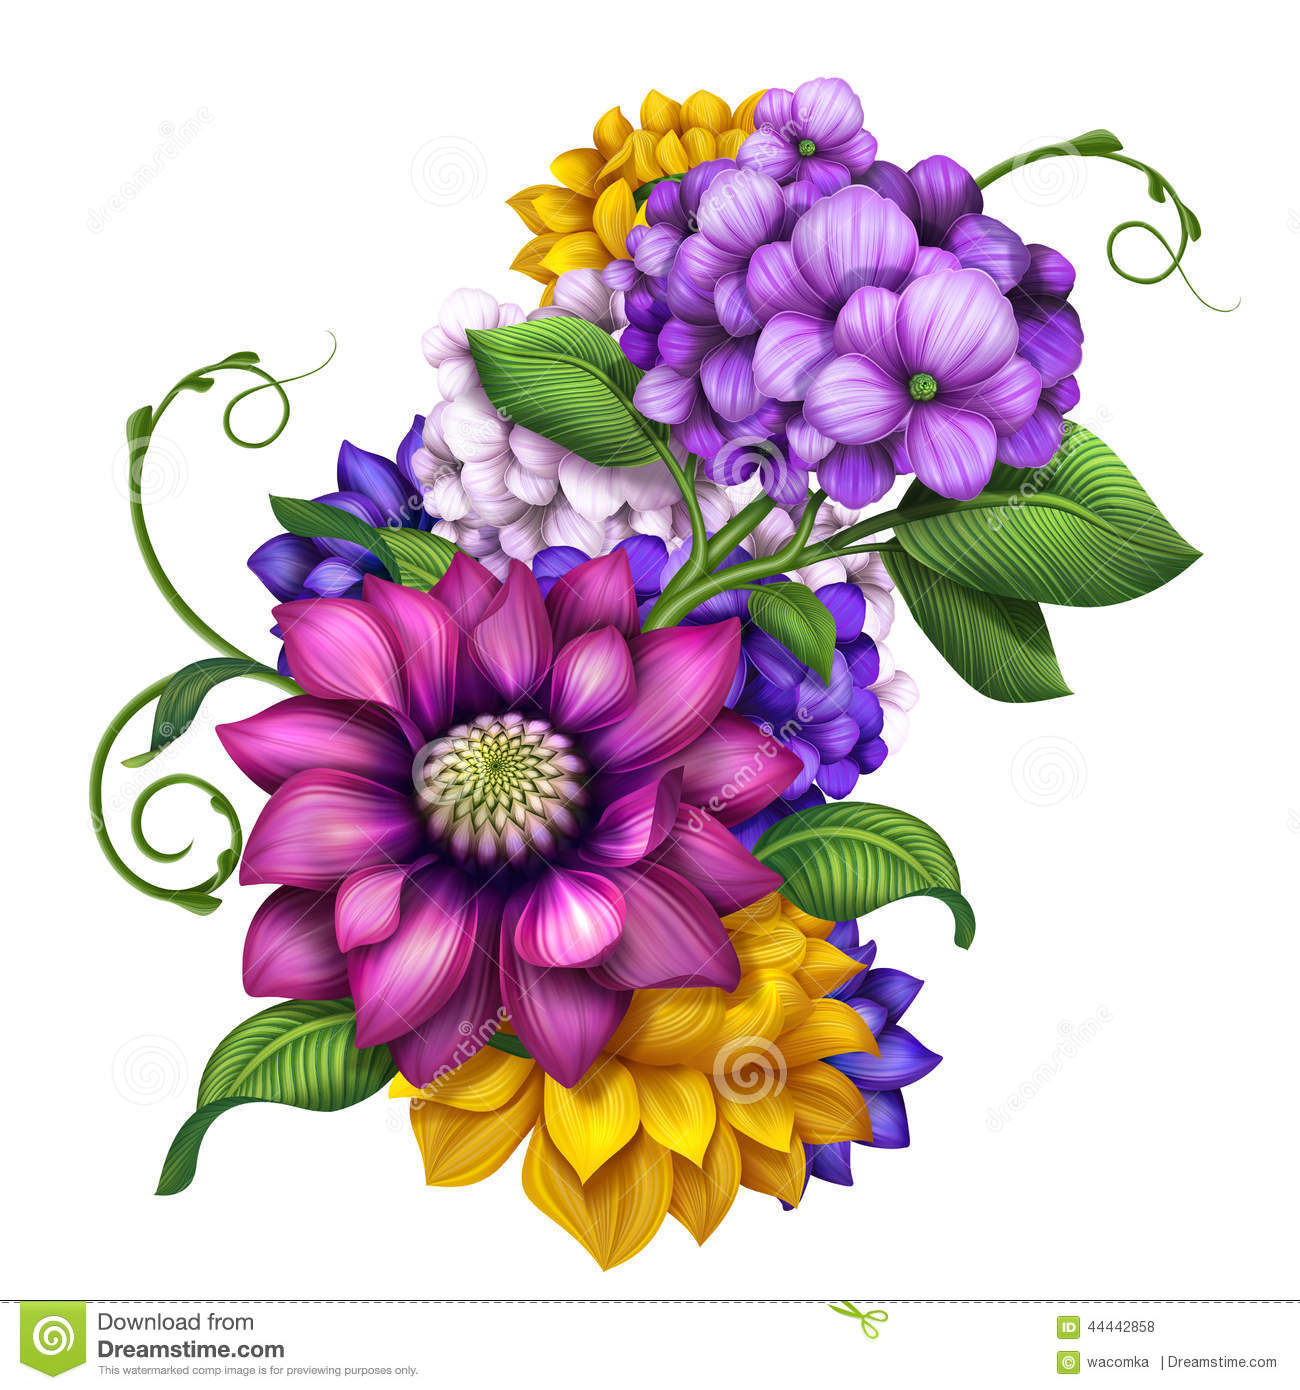 assorted colorful autumn flowers clip art illustration